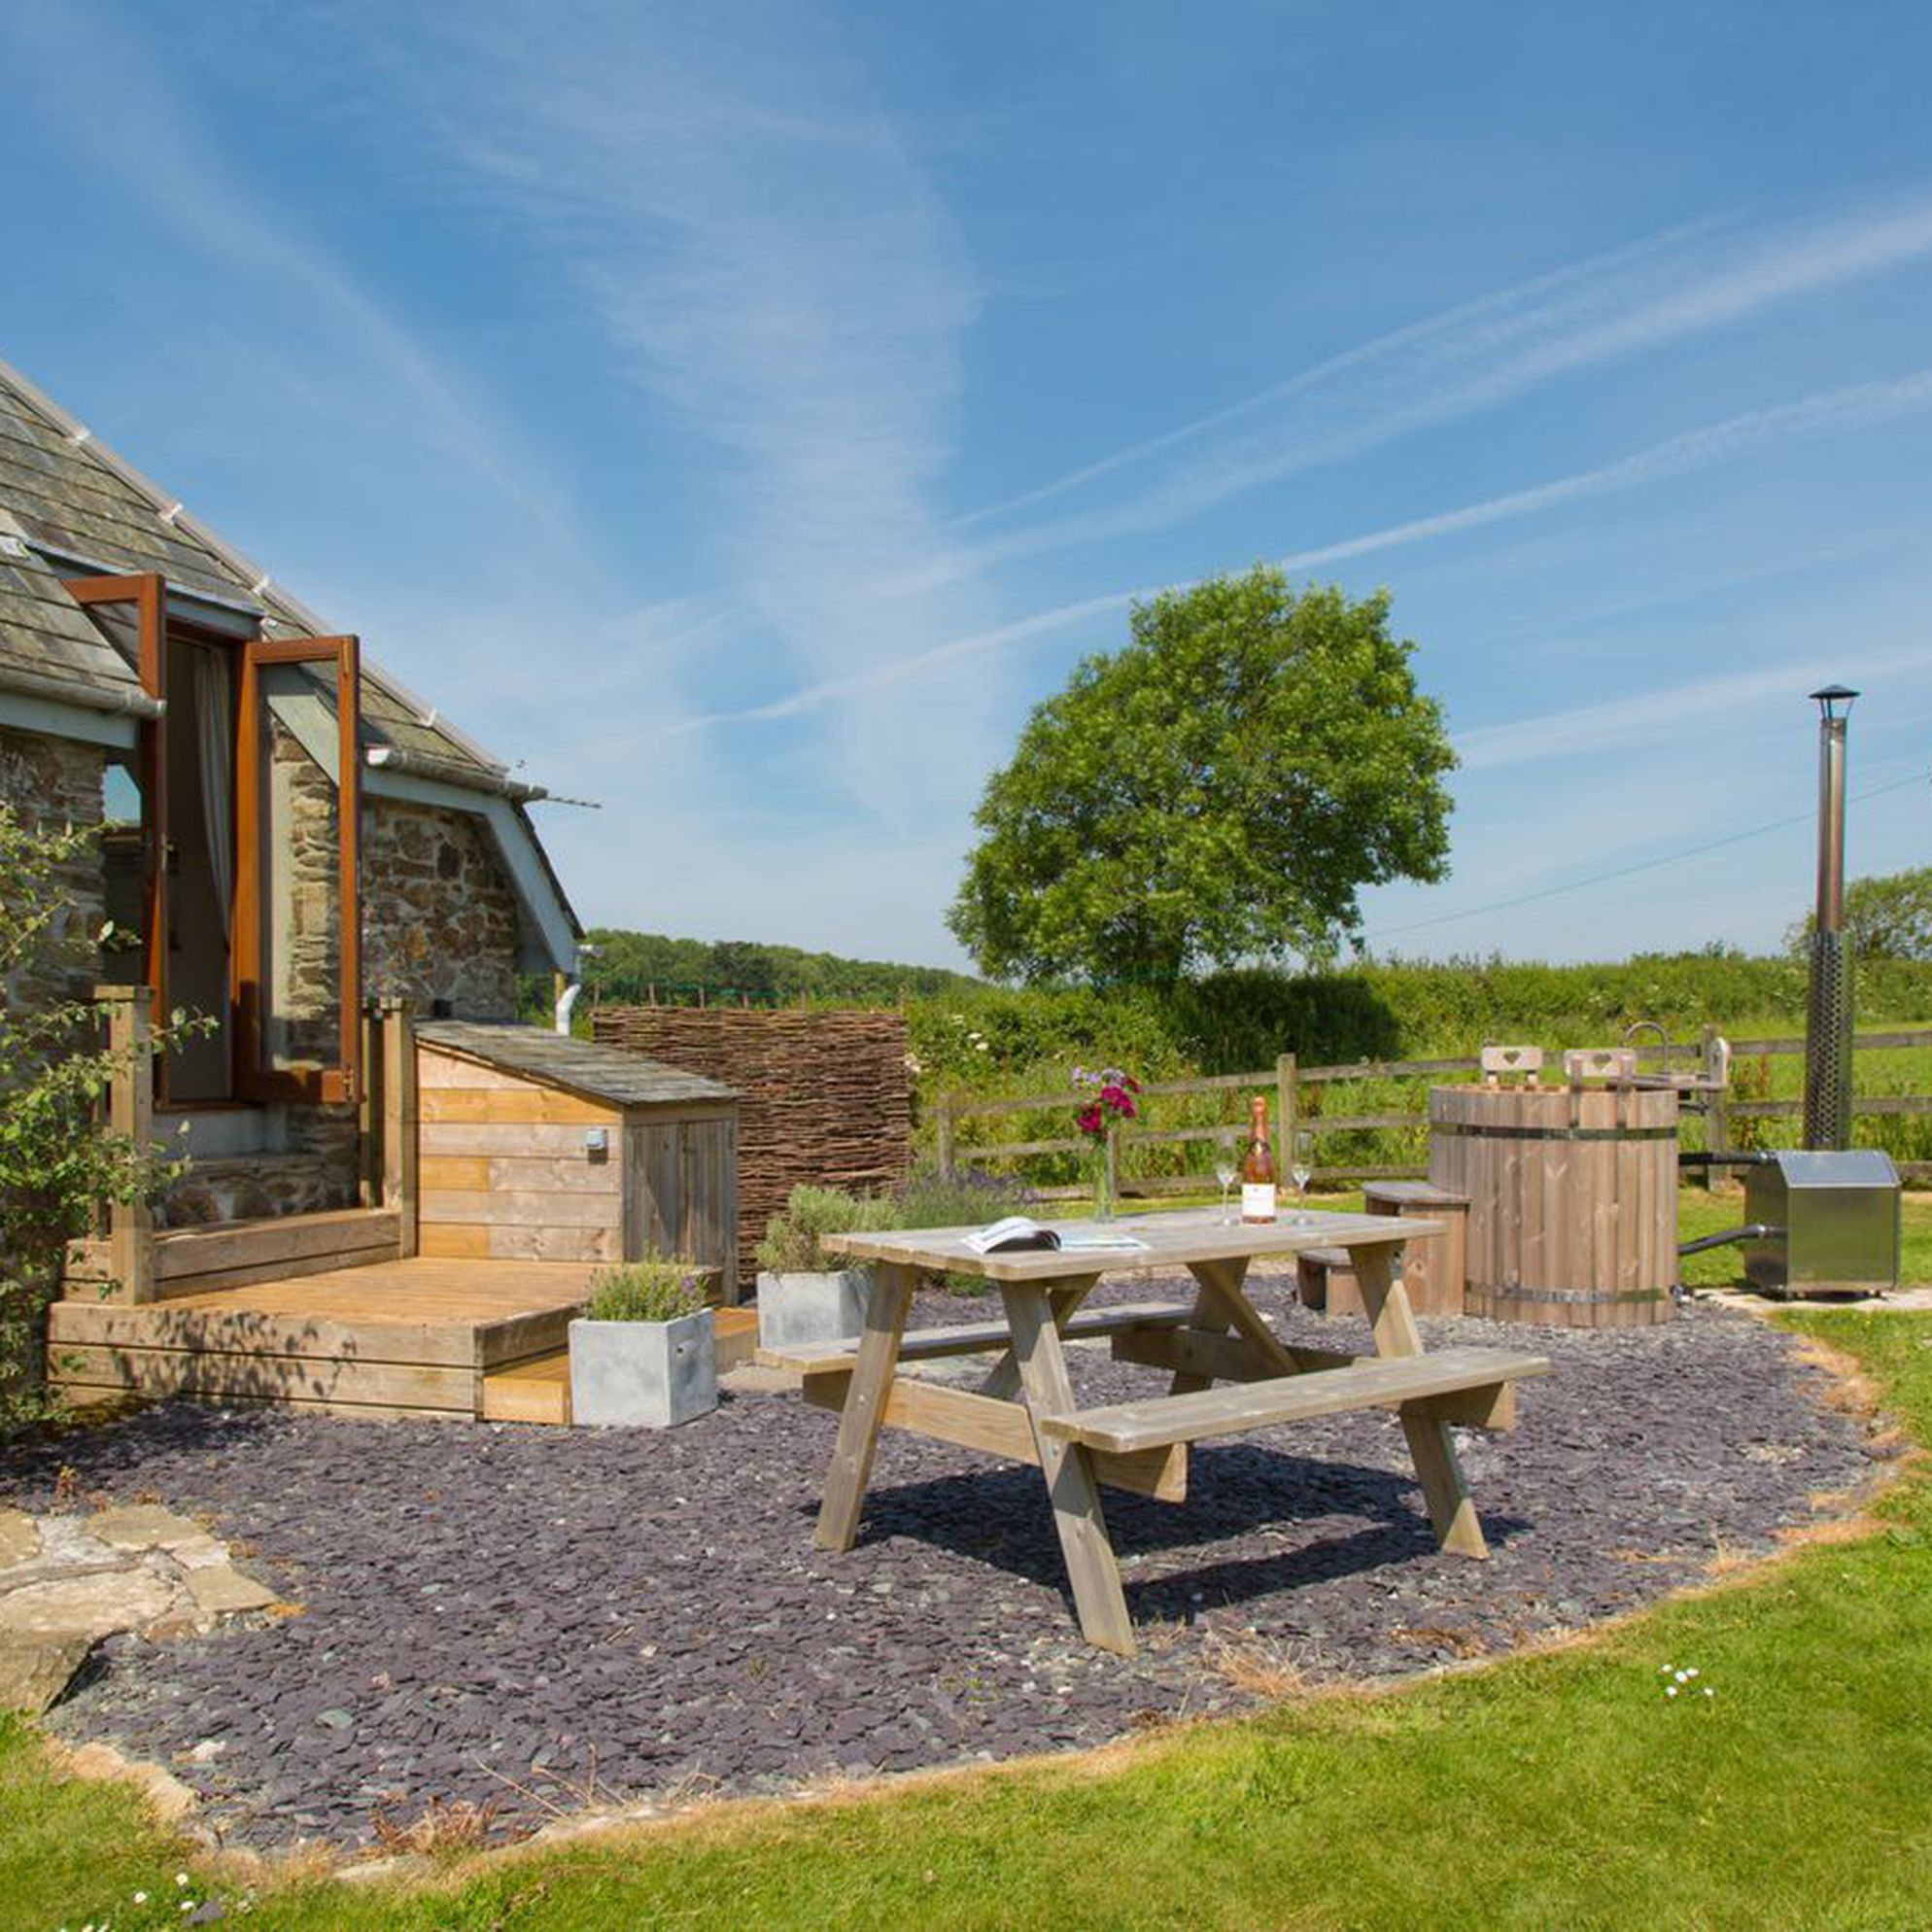 Large holiday cottages with hot tubs